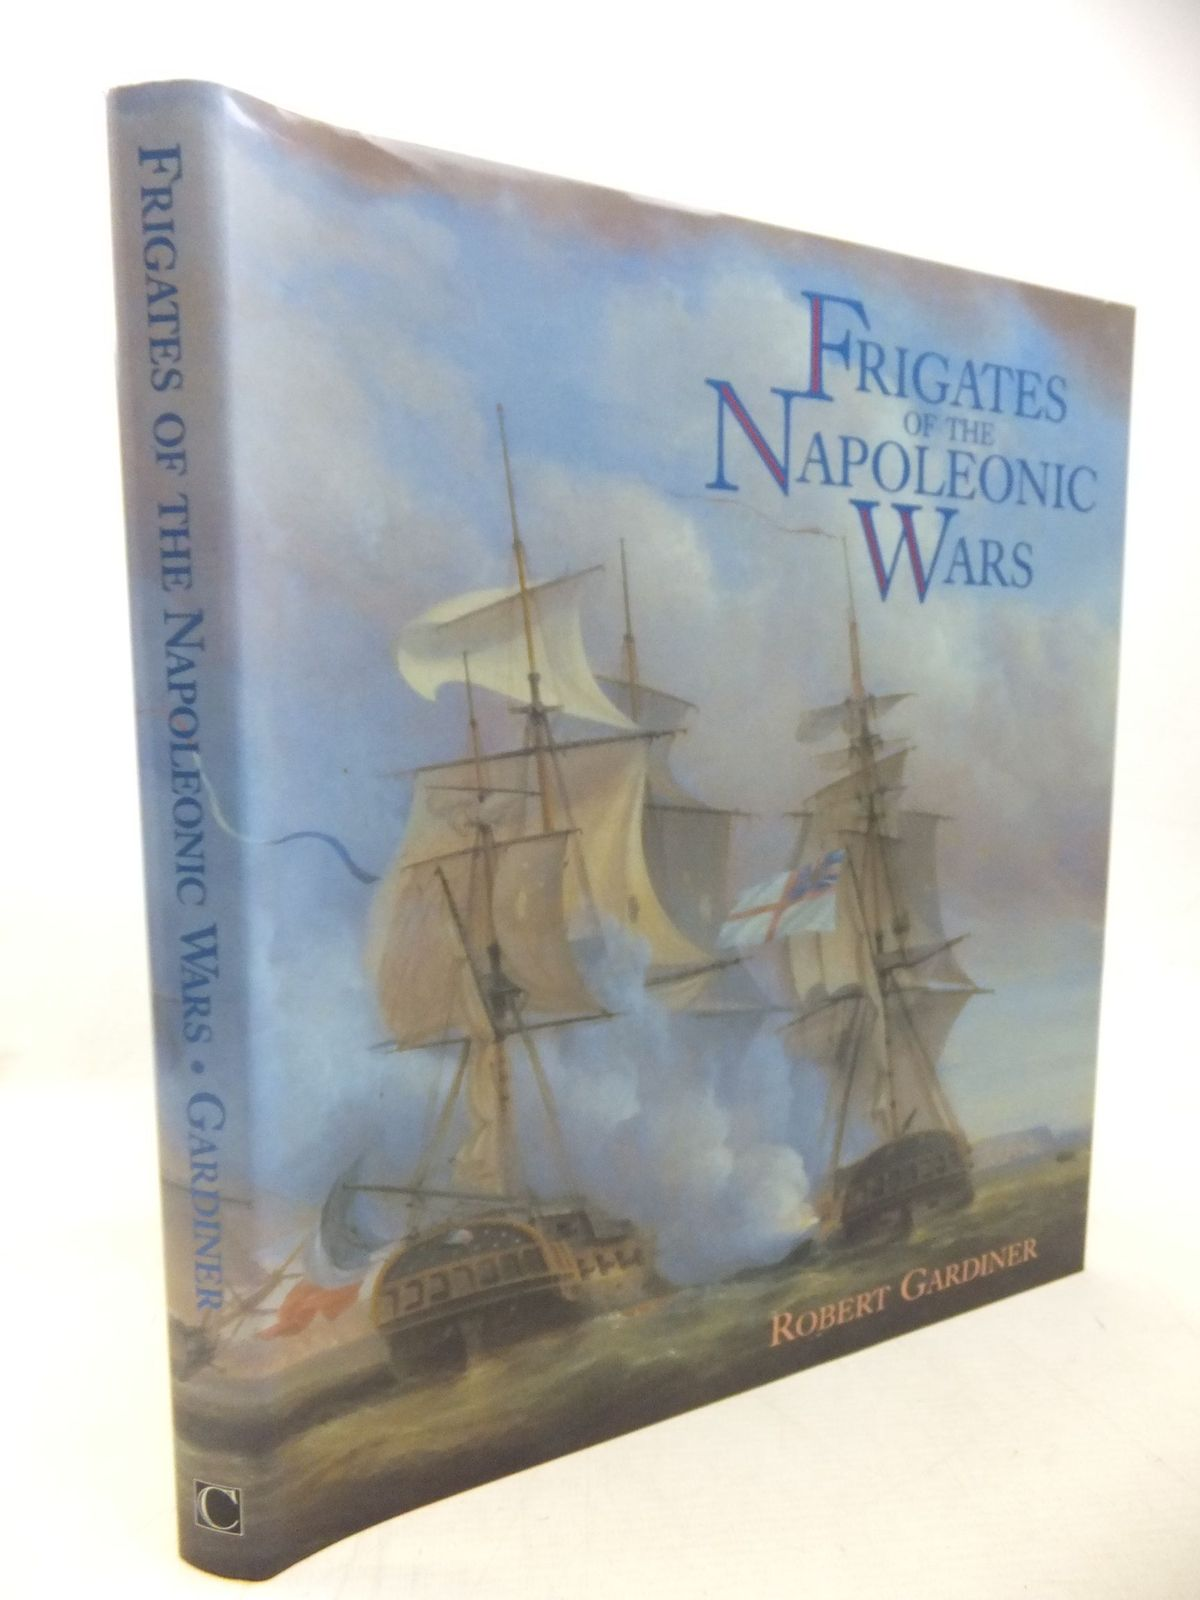 Photo of FRIGATES OF THE NAPOLEONIC WARS written by Gardiner, Robert published by Chatham Publishing (STOCK CODE: 1713637)  for sale by Stella & Rose's Books